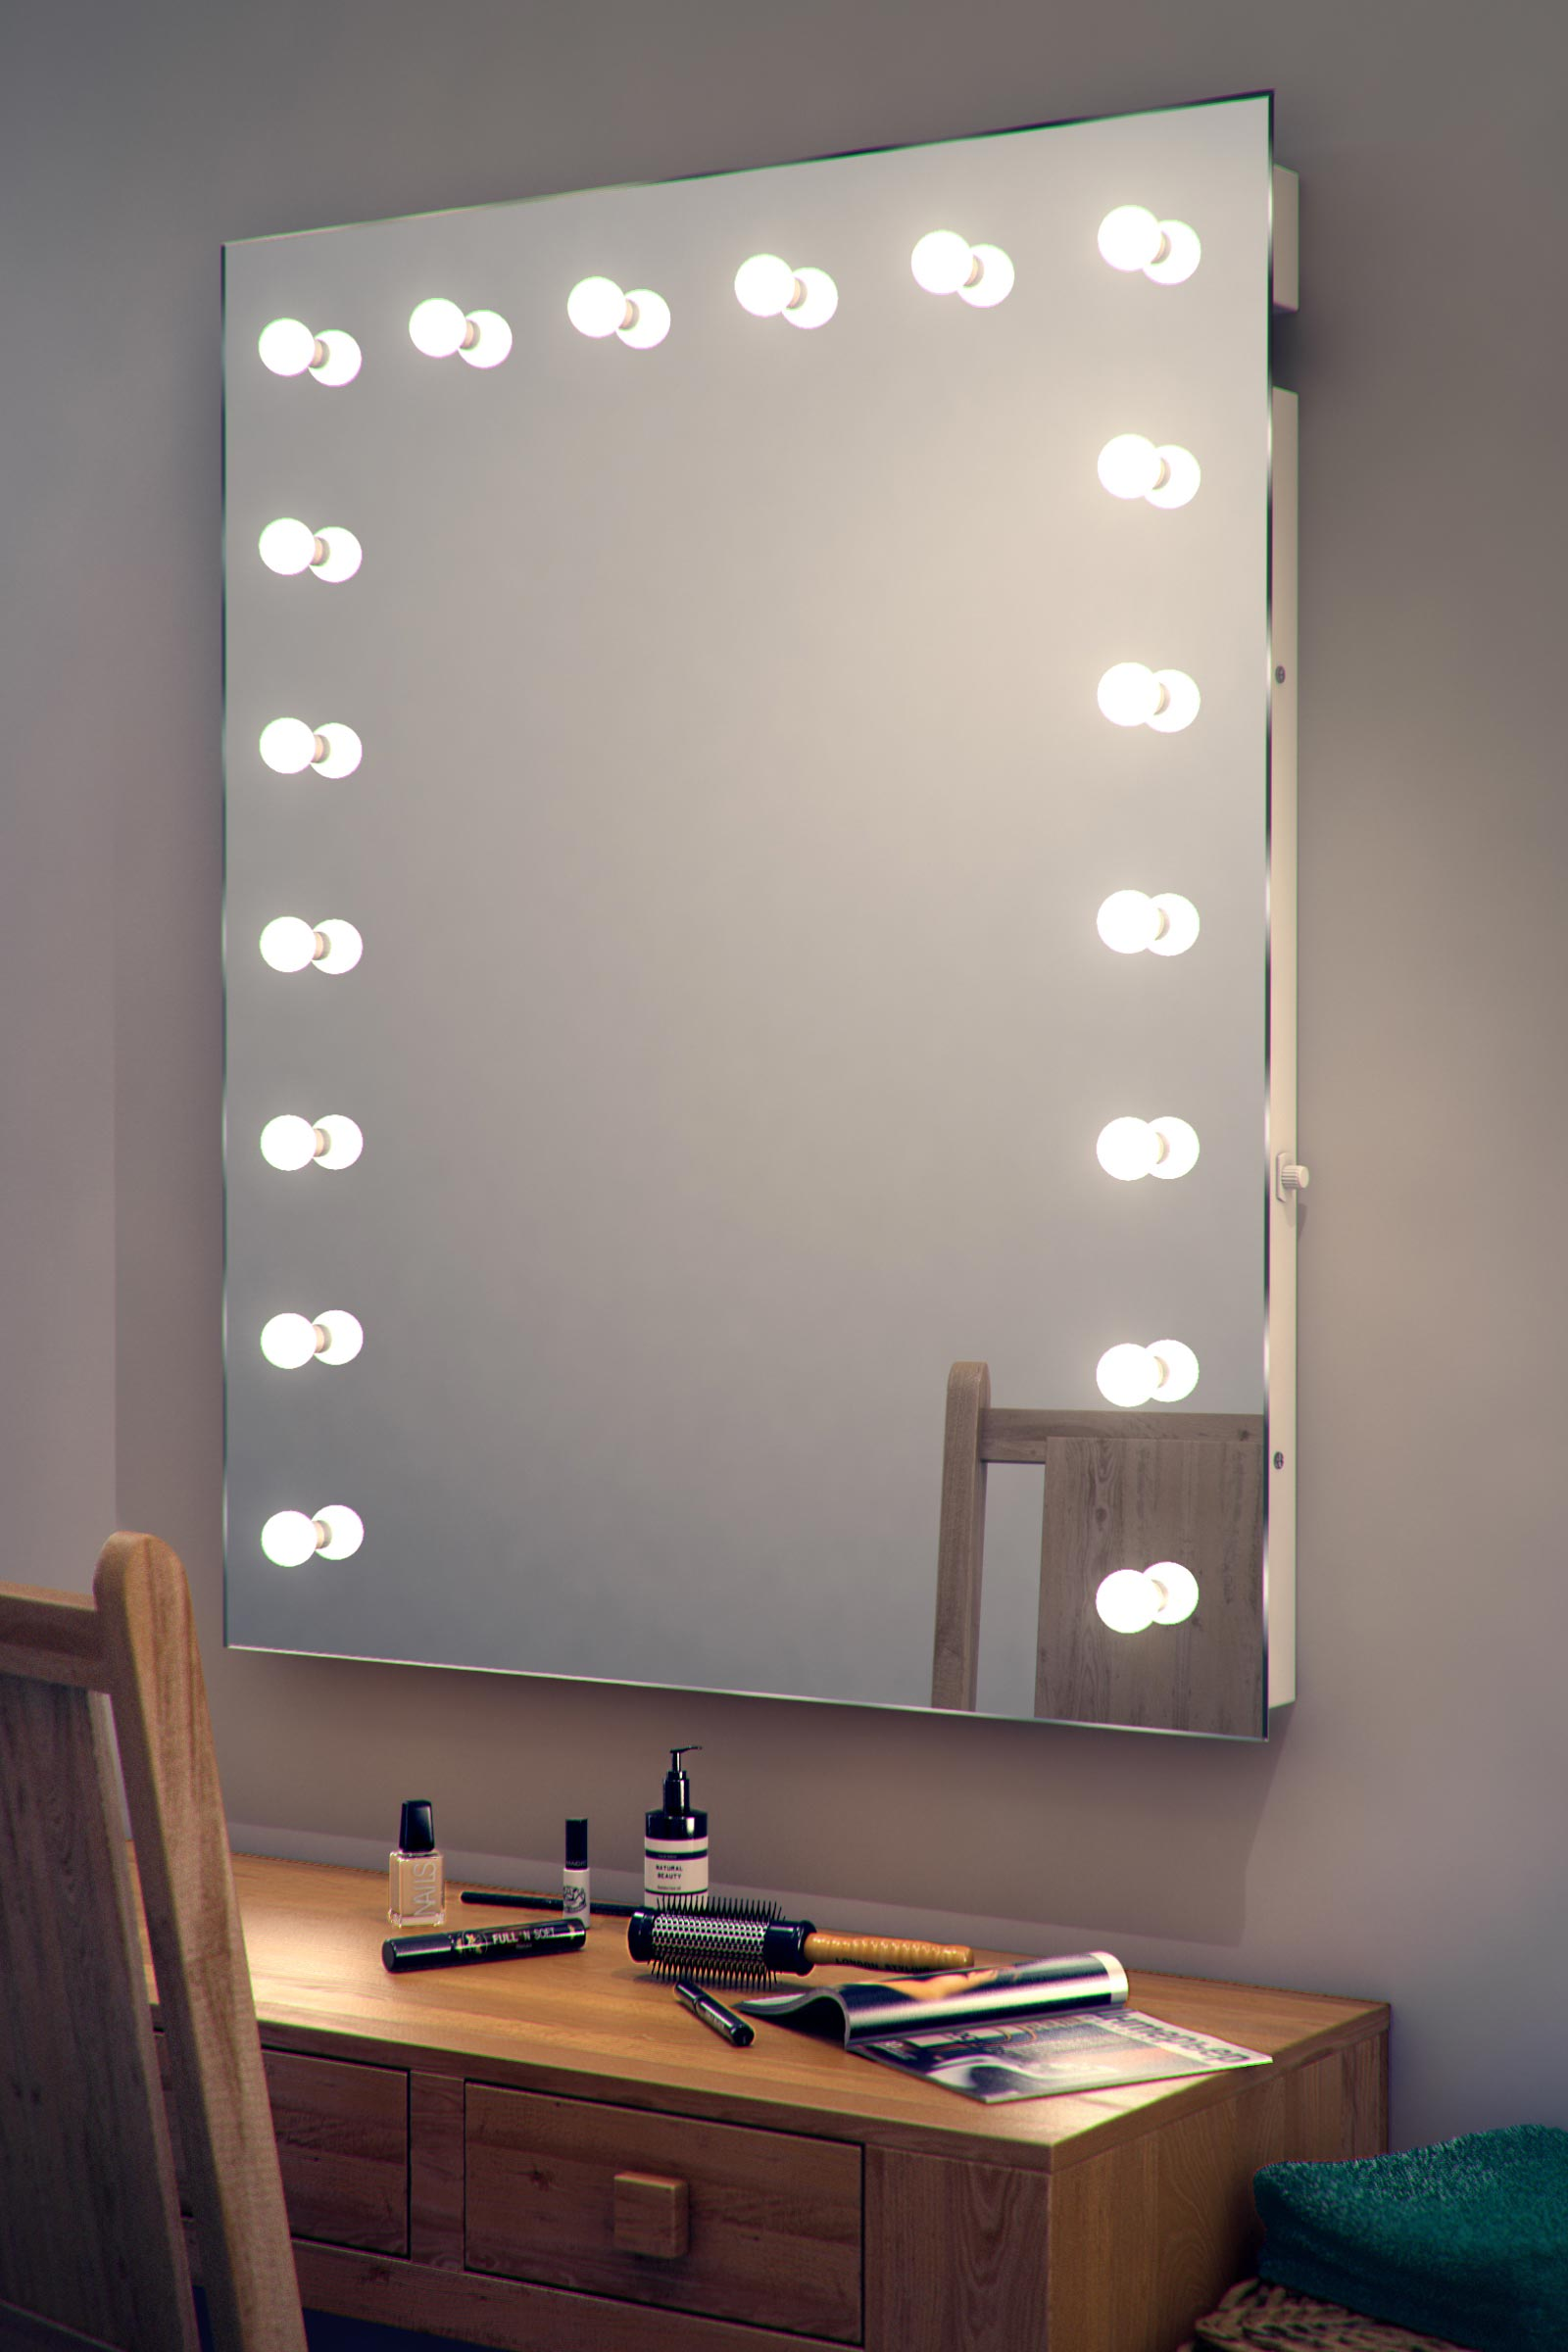 Mirrors hollywood vanity mirror with lights for best vanity room hollywood vanity mirror with lights hollywood lighted makeup mirror lighted vanity mirror hollywood geotapseo Images